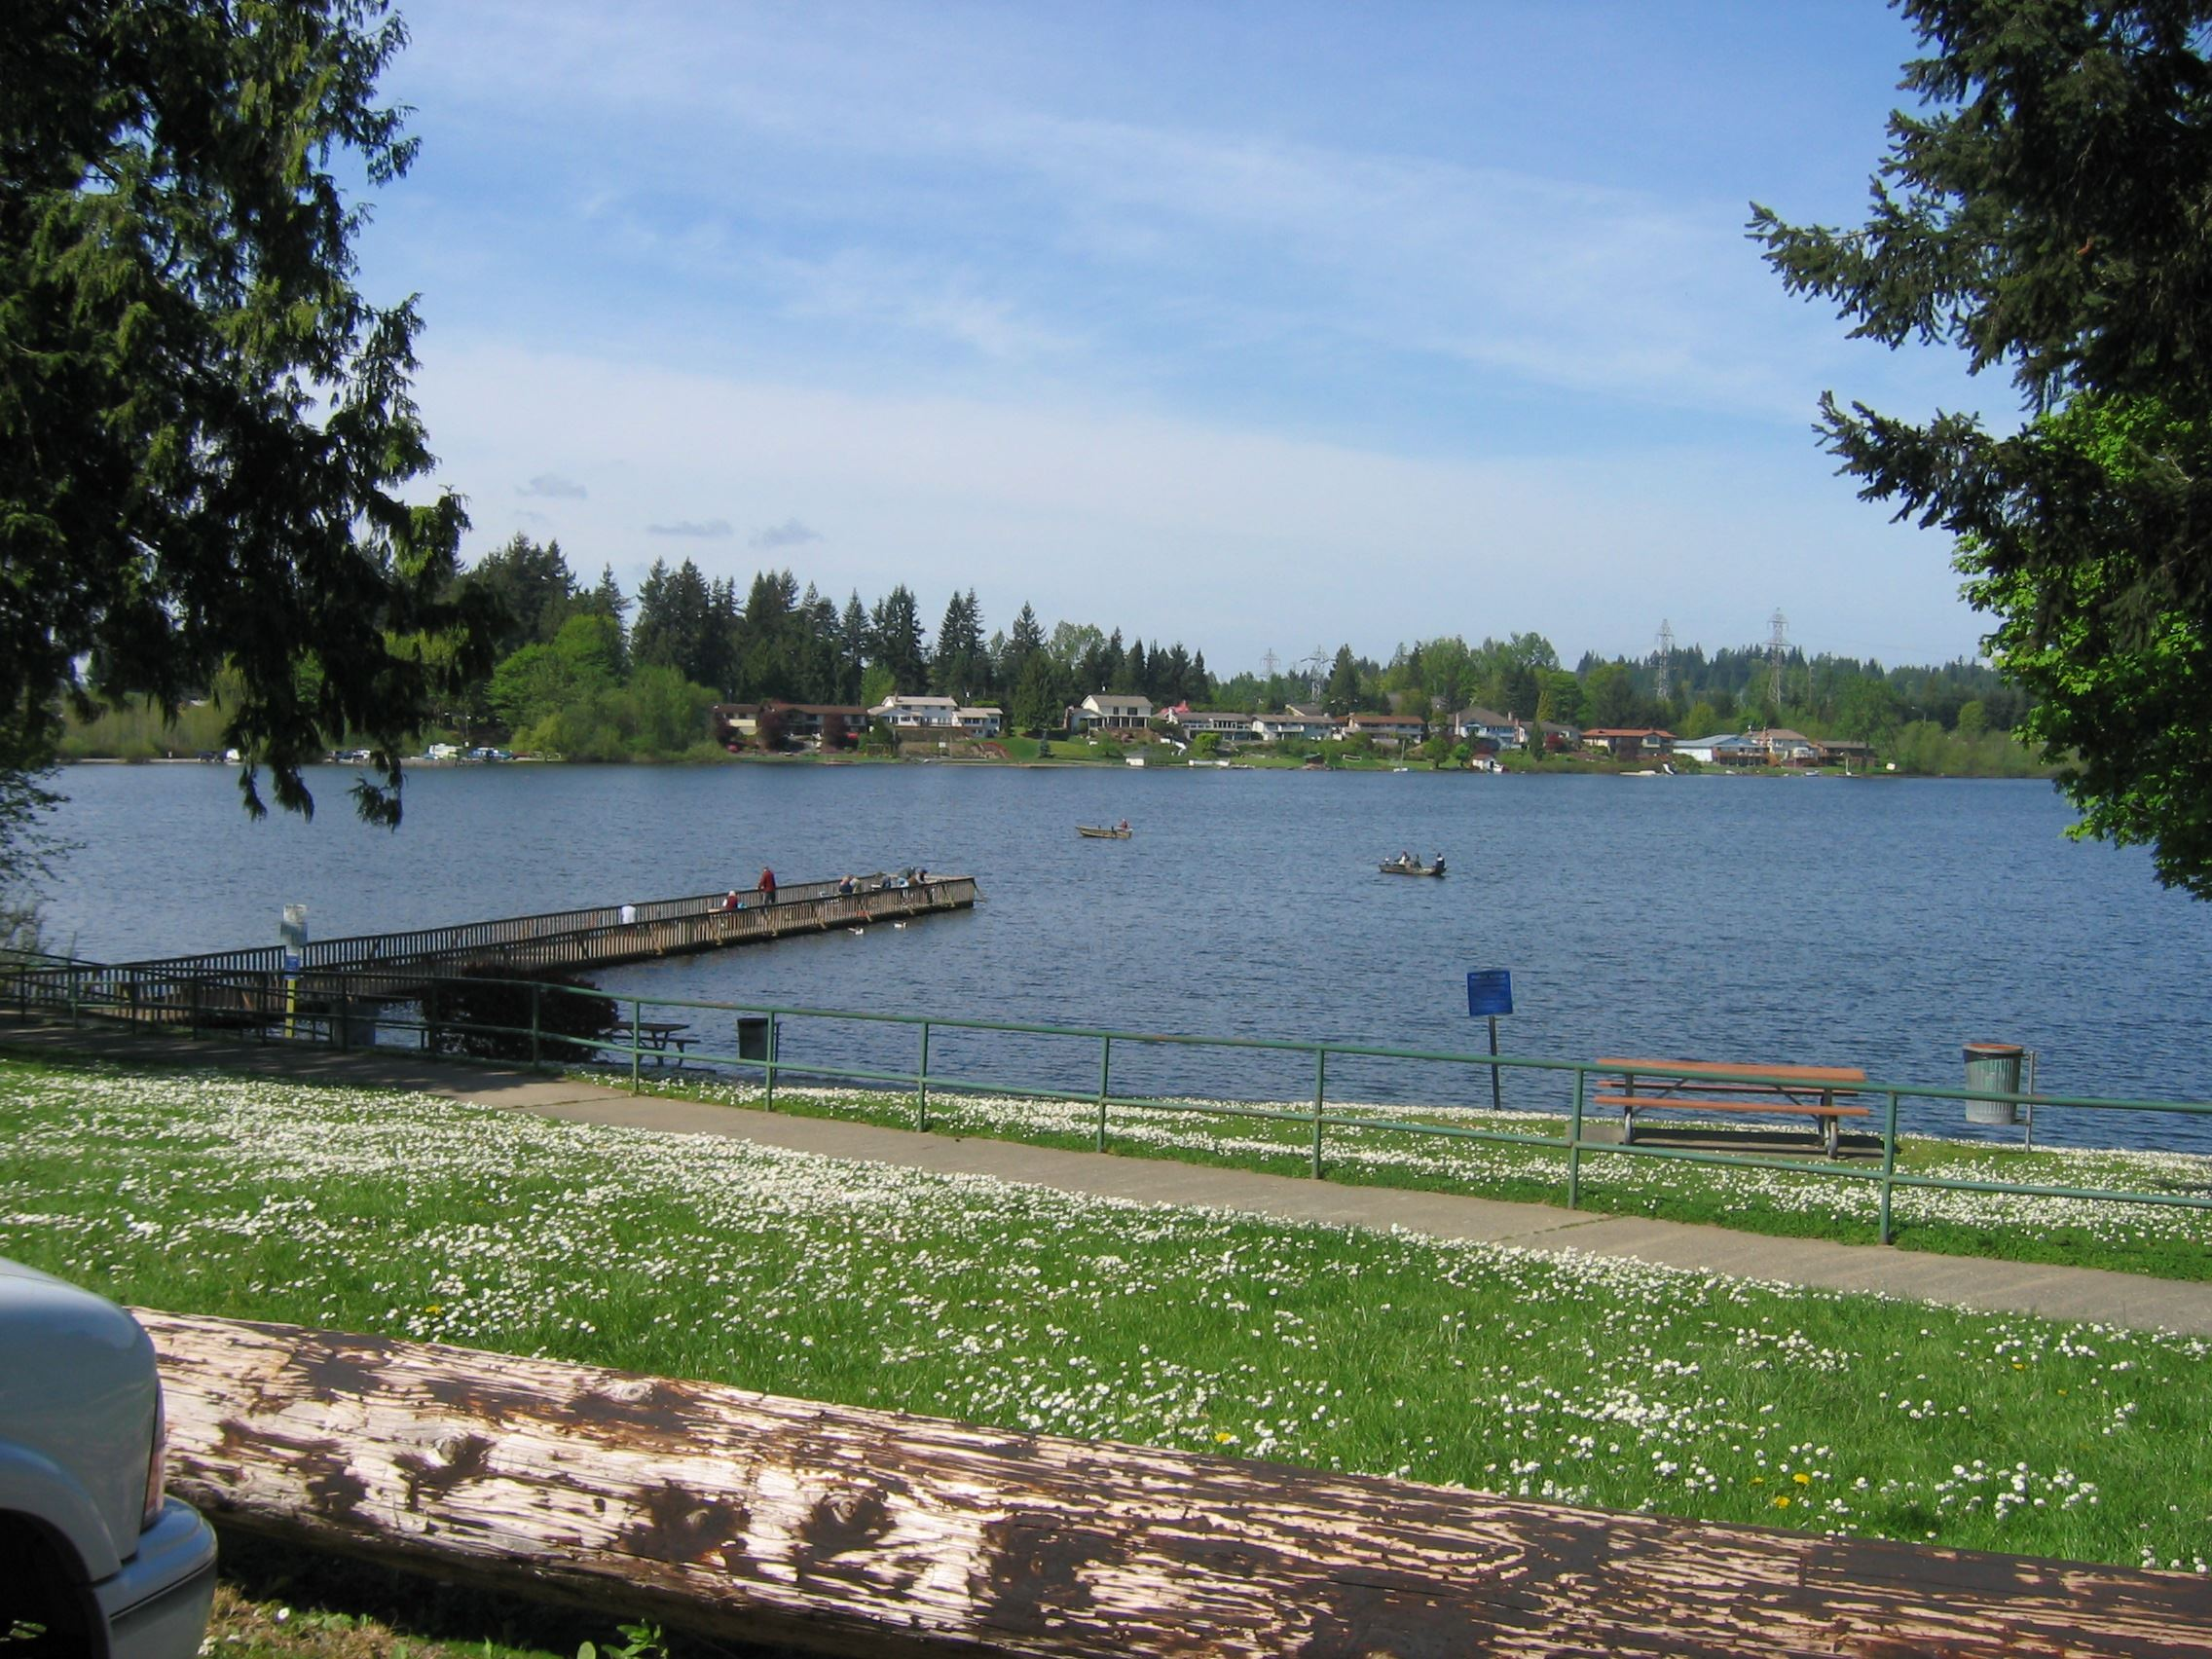 Hill Park - Blackmans Lake